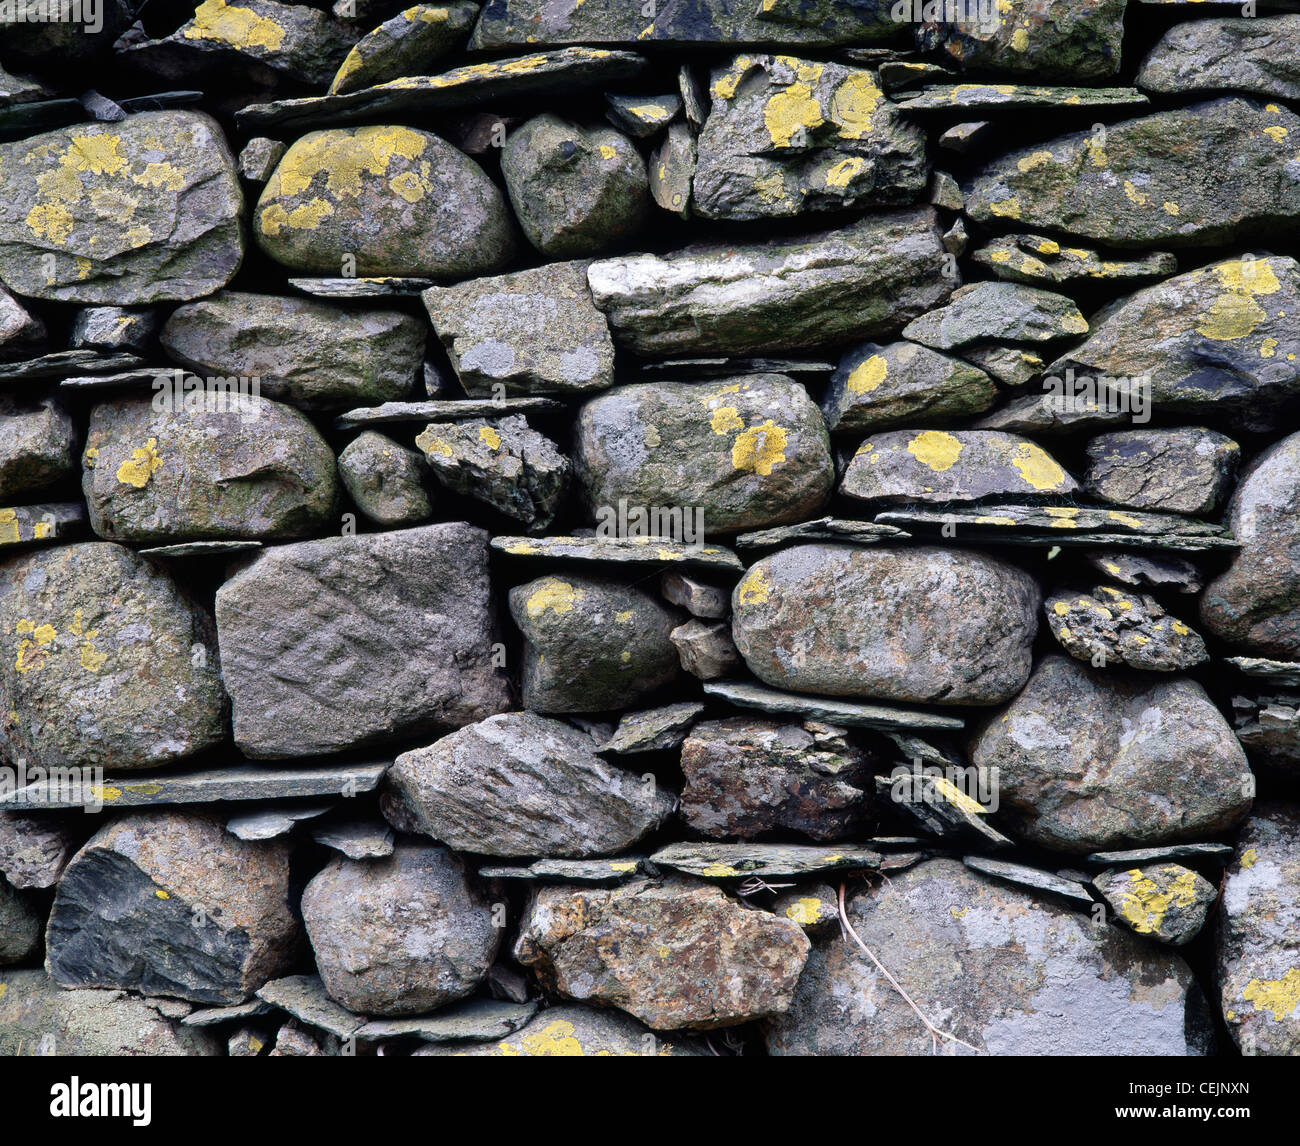 Parede Drystone close-up. Newlands valley, Cumbria, Inglaterra, Reino Unido. No parque nacional Lake District. Imagens de Stock